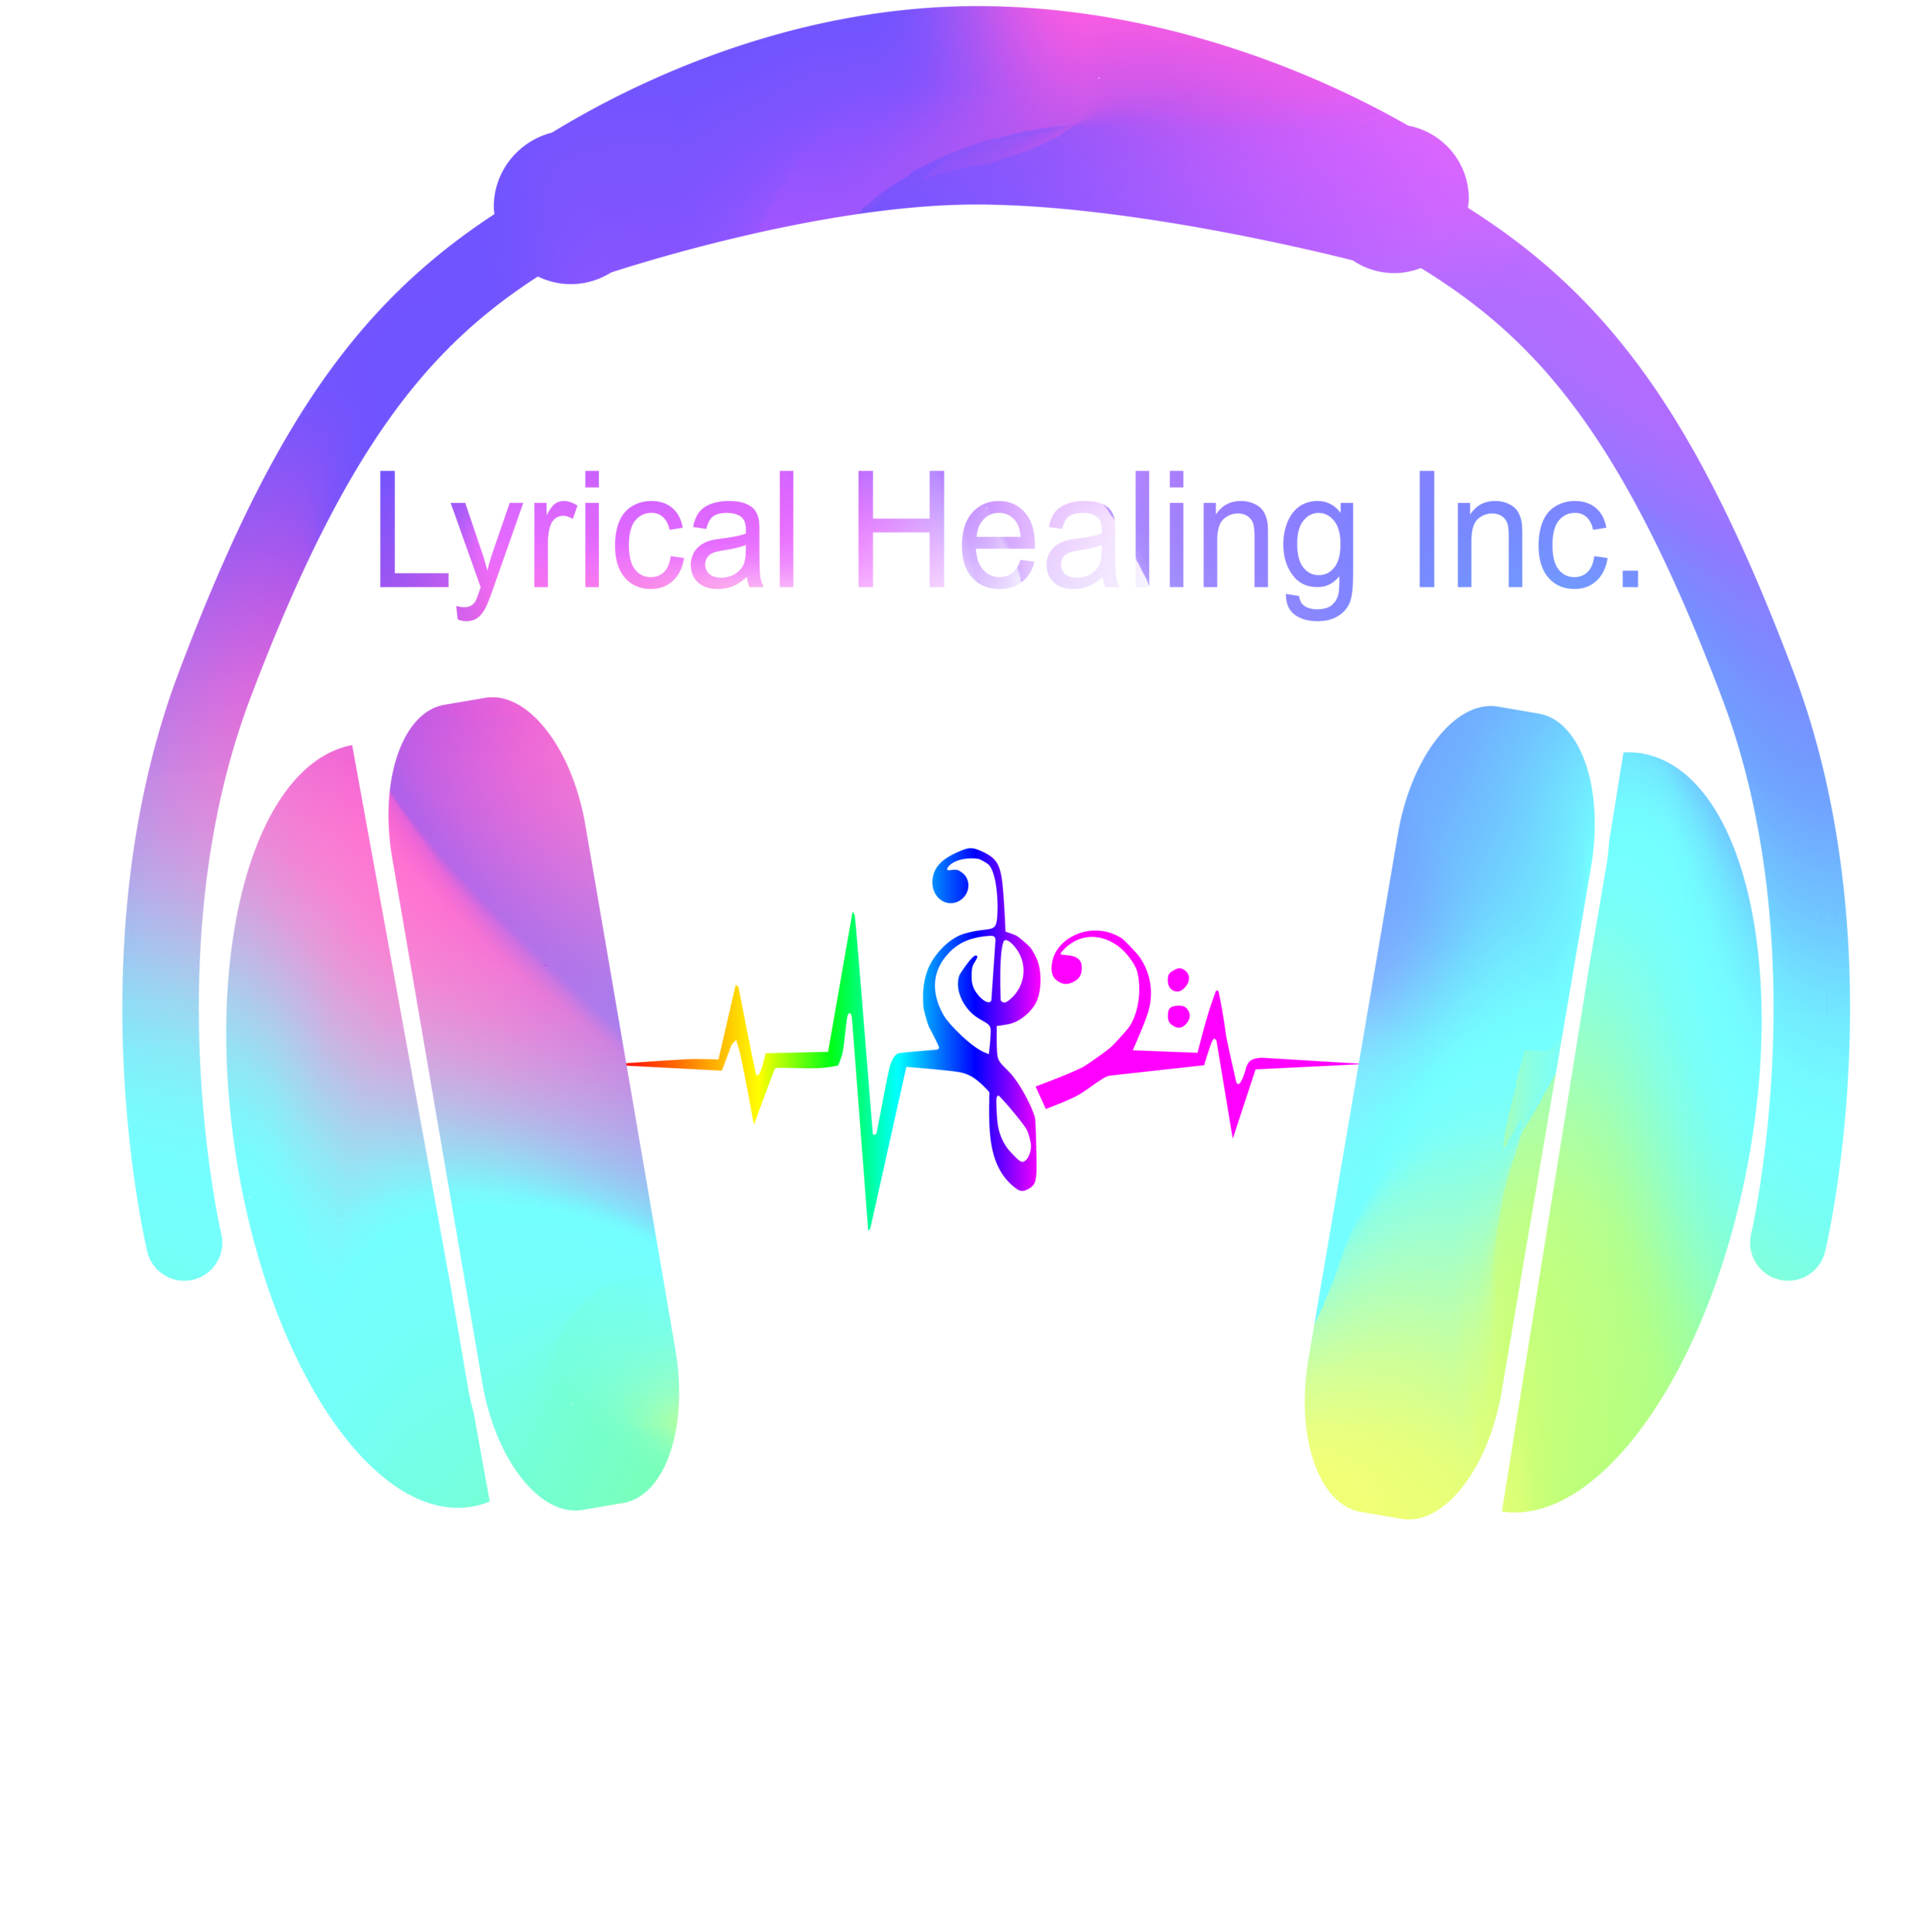 "1:30 pm Lyrical Healing - The Executive Director of Lyrical Healing Inc will speak about their initiatives as a new non-profit organization in Jessamine County.Lyrical Healing Inc is a 501 C3 Non-Profit Youth Music Organization. We offer free music courses to teens from adverse environments as a positive outlet for self-expression and stress relief. We are also advocating for the understanding and furthered education of ""Adverse Childhood Experiences"" (ACEs), the study that links adverse upbringings such as abuse and neglect, directly to adult chronic illnesses. We aim to be the intervention between the adversity and the negative life long impacts it can create."